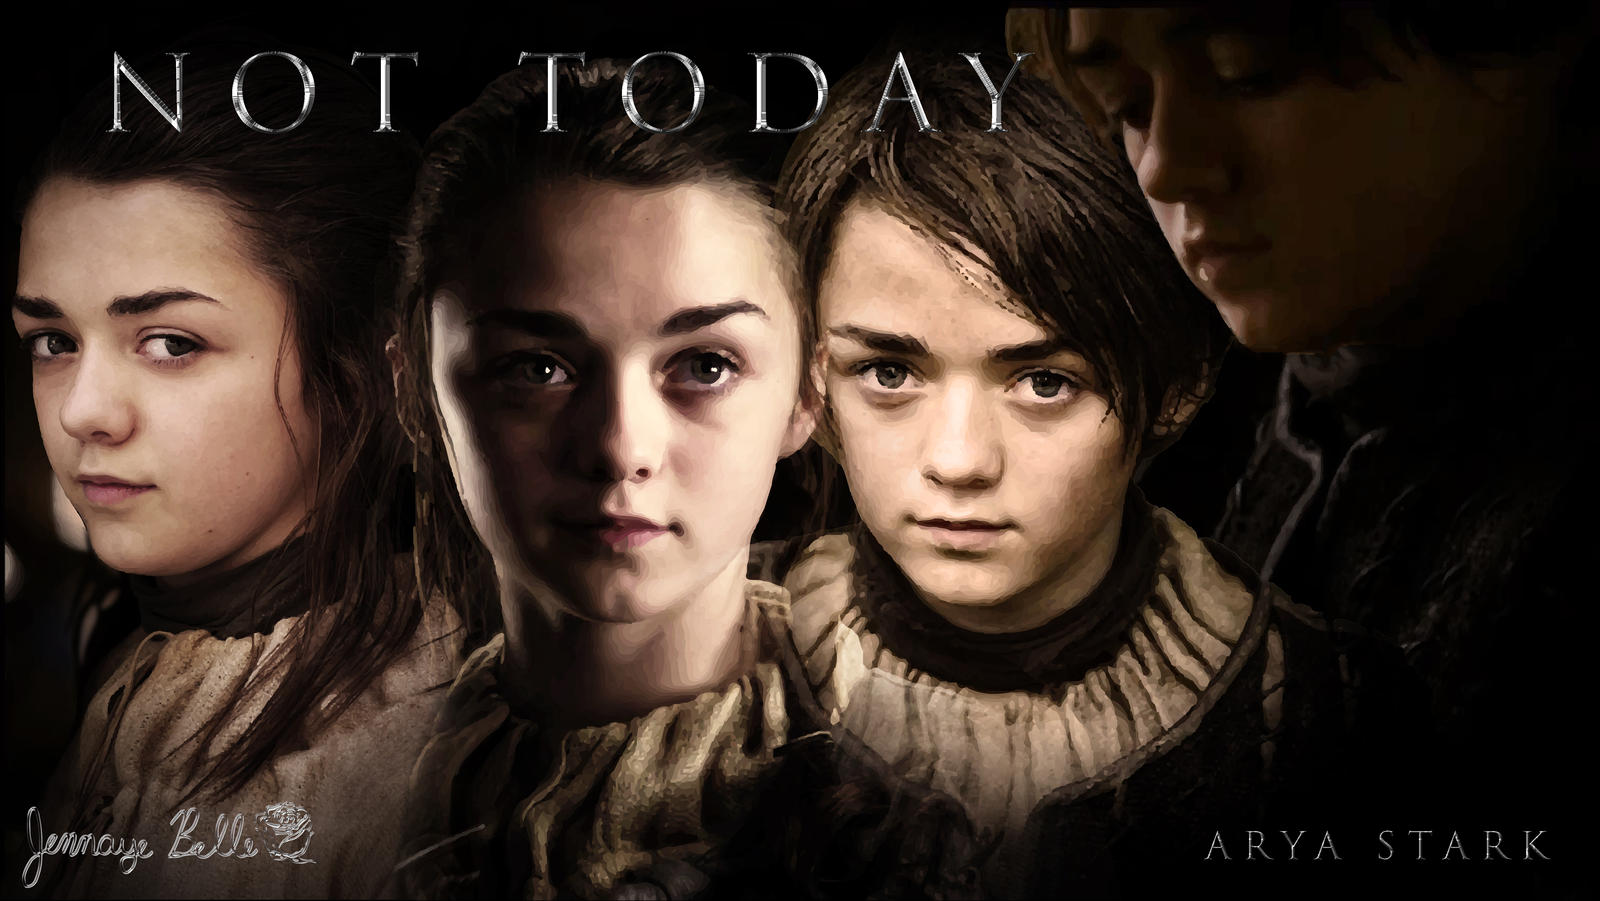 [série] Personnages feminins favories ? Arya_stark___not_today_by_jen__a-d5w98zr